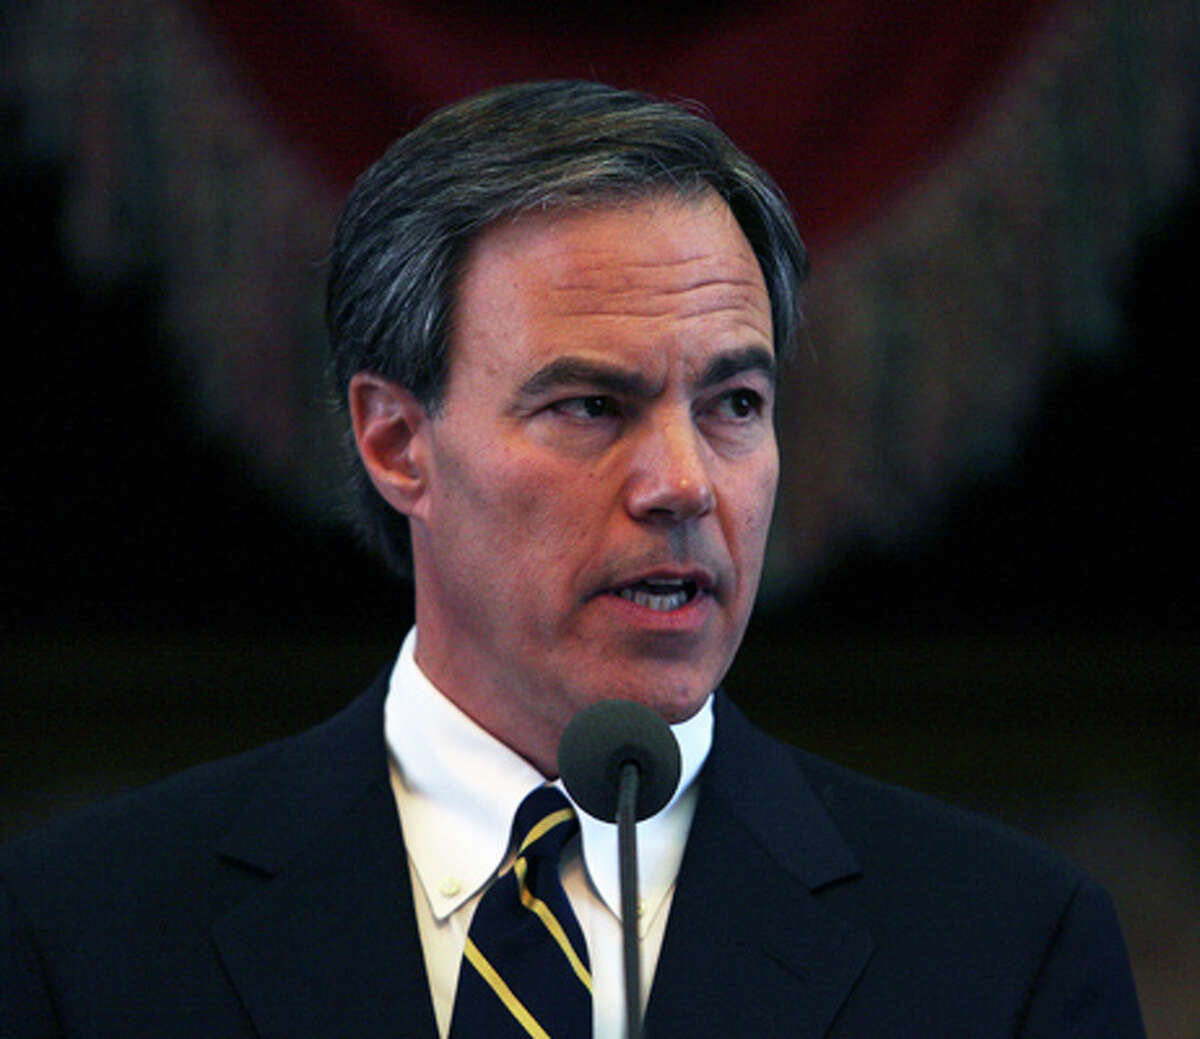 Joe Straus speaks after being sworn in as Speaker of the House during the convening of the 81st Texas Legislature in Austin in 2009.